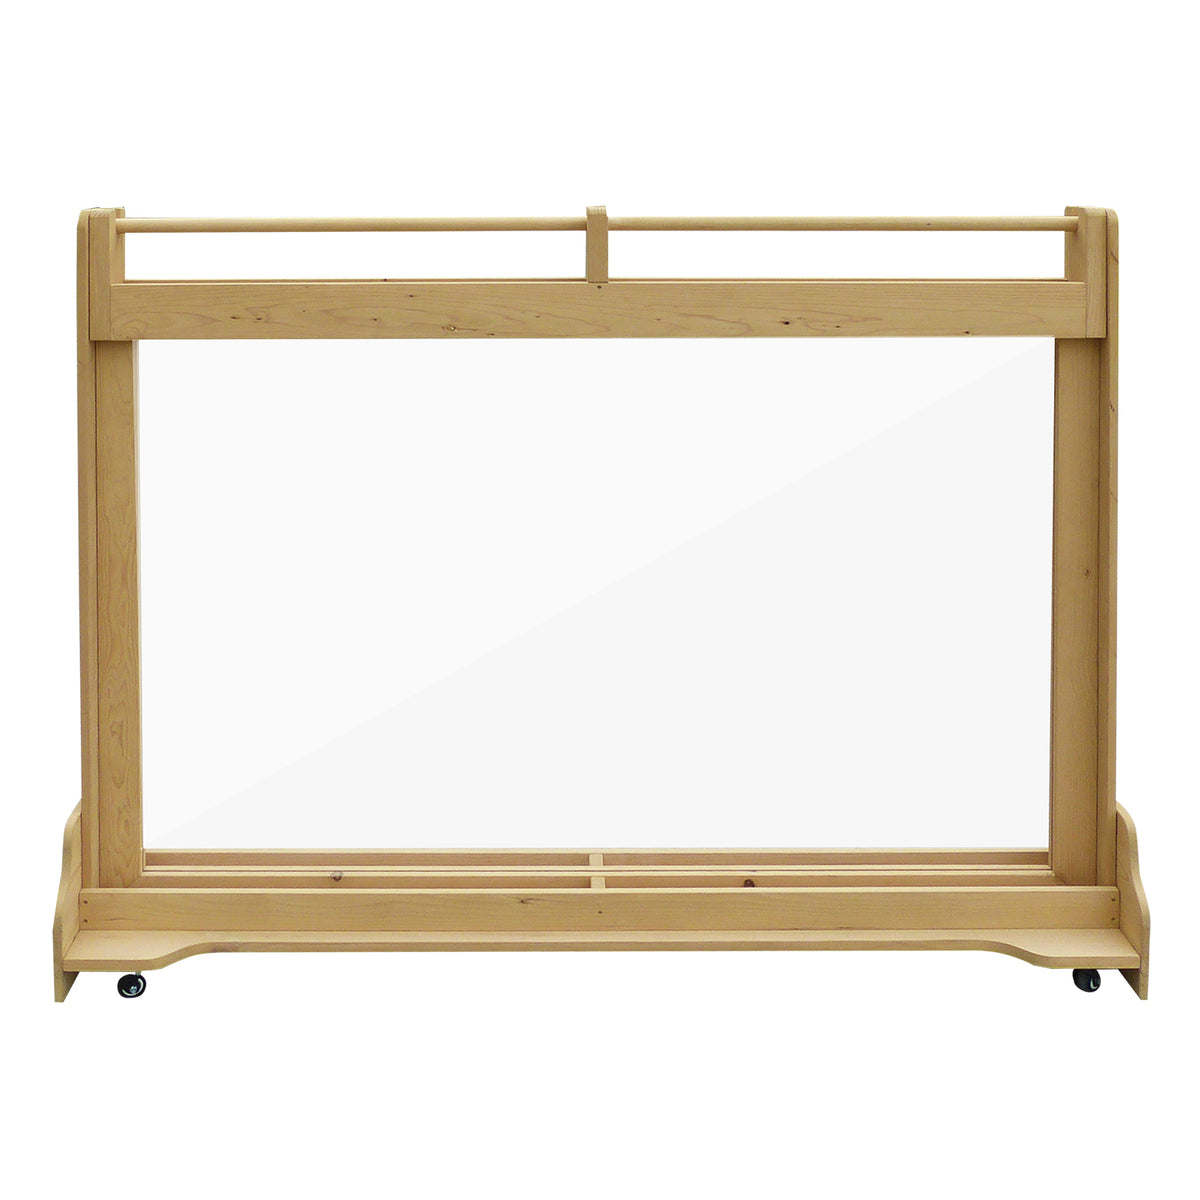 Lifespan Kids Creativ Drawing Board